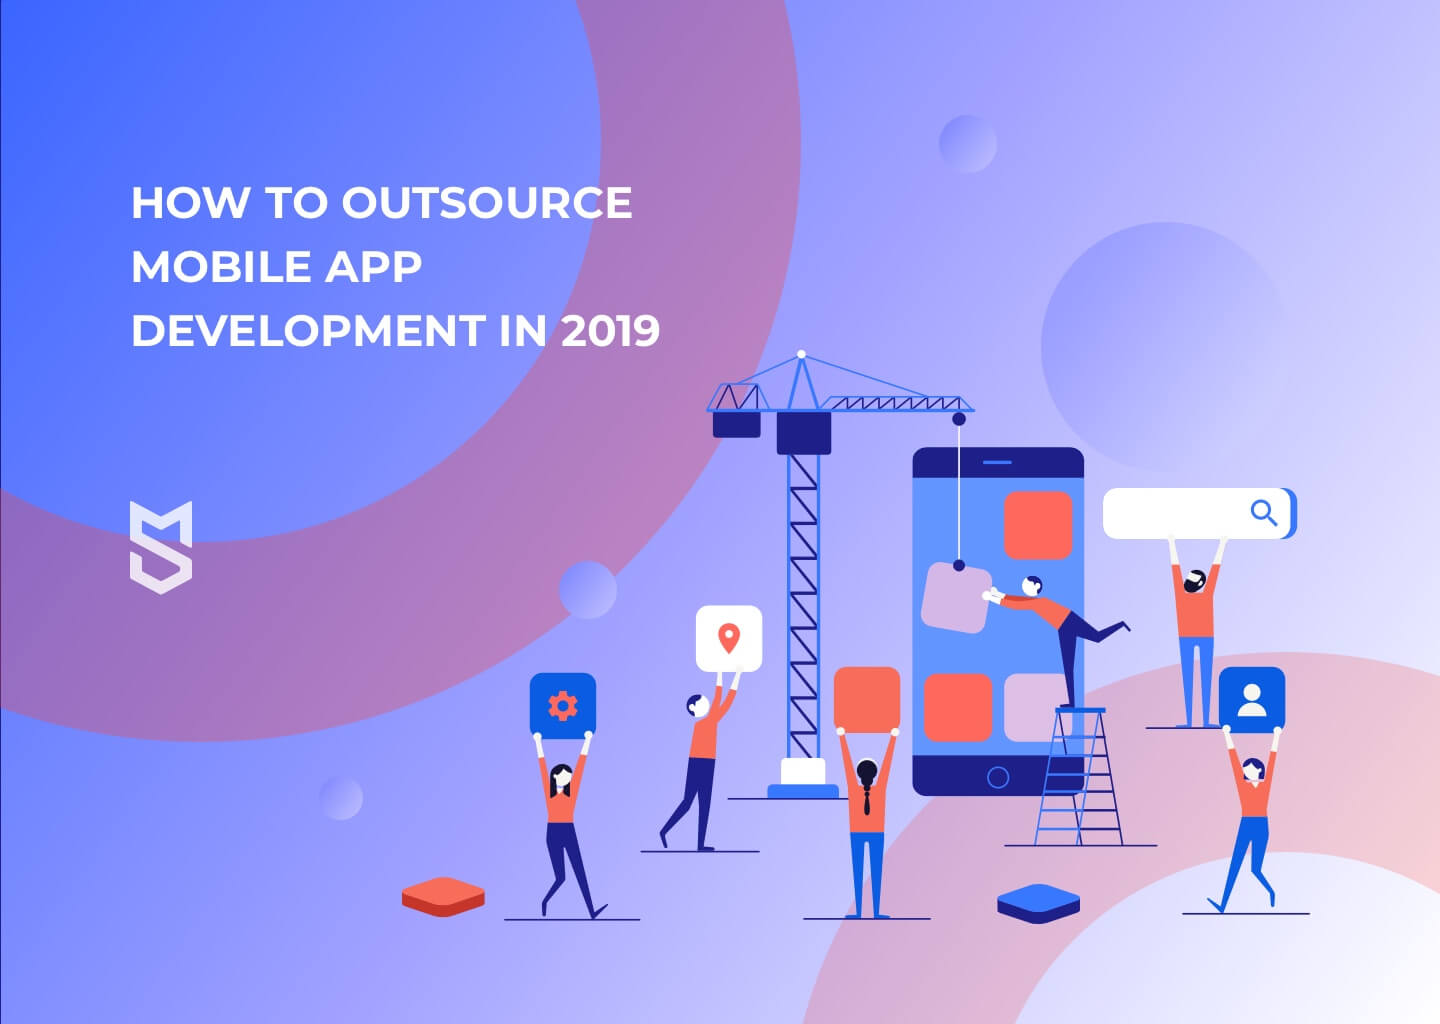 How to Outsource Mobile App Development in 2019